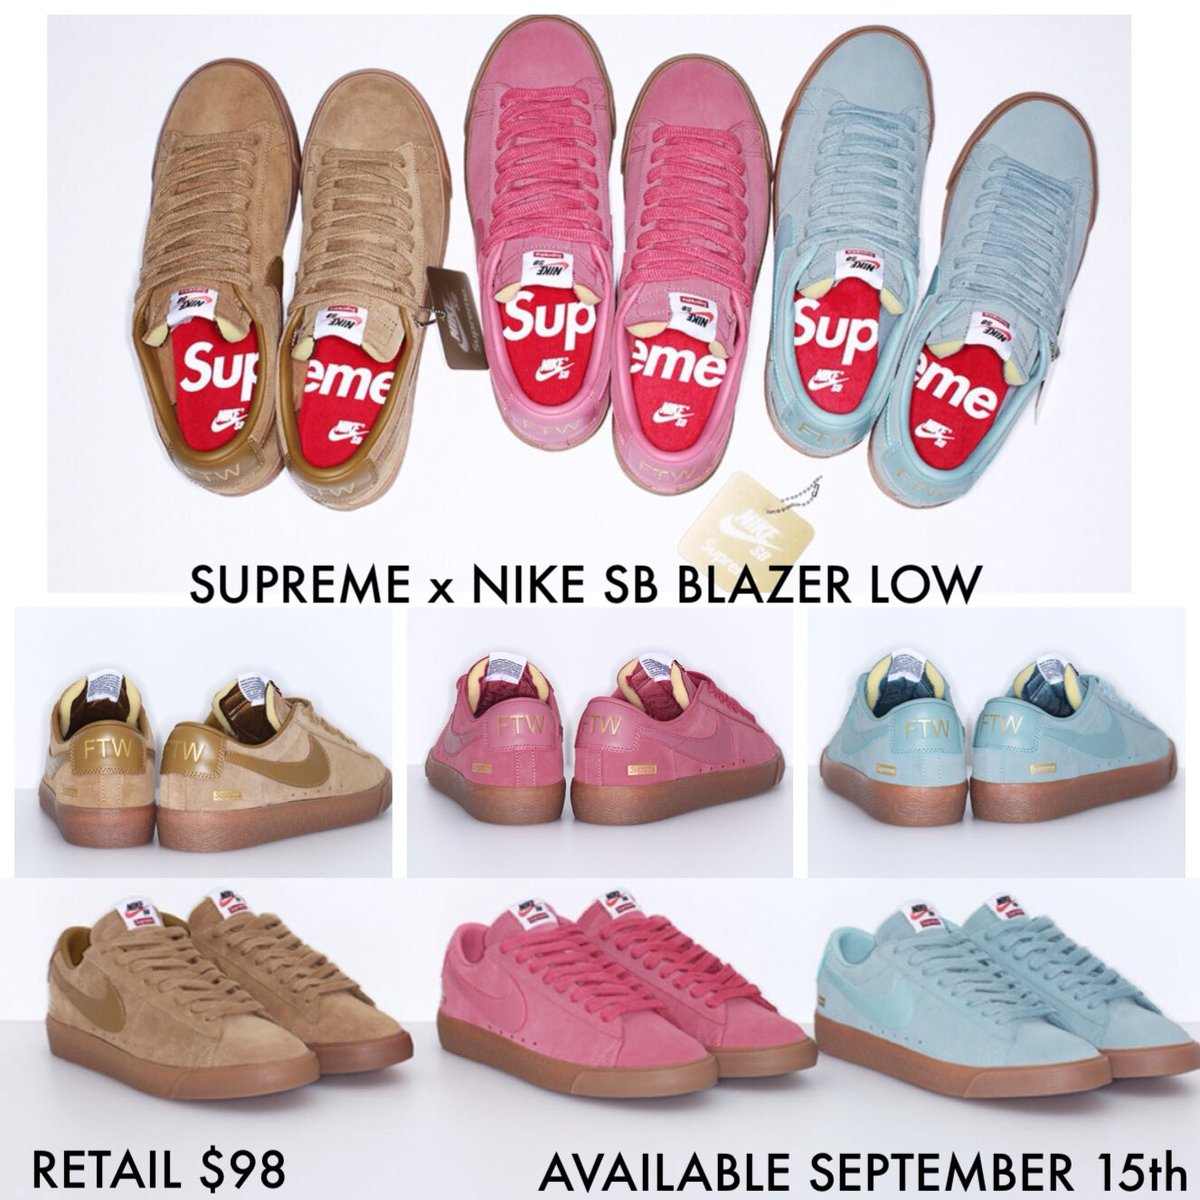 uk availability 0d7b4 de3f9 Supreme x Nike SB Blazer Low GT Available This Thurs September 15th Cannon,  Beige, Desert Bloom Colors Retail 98pic.twitter.com5AywMdR7YW